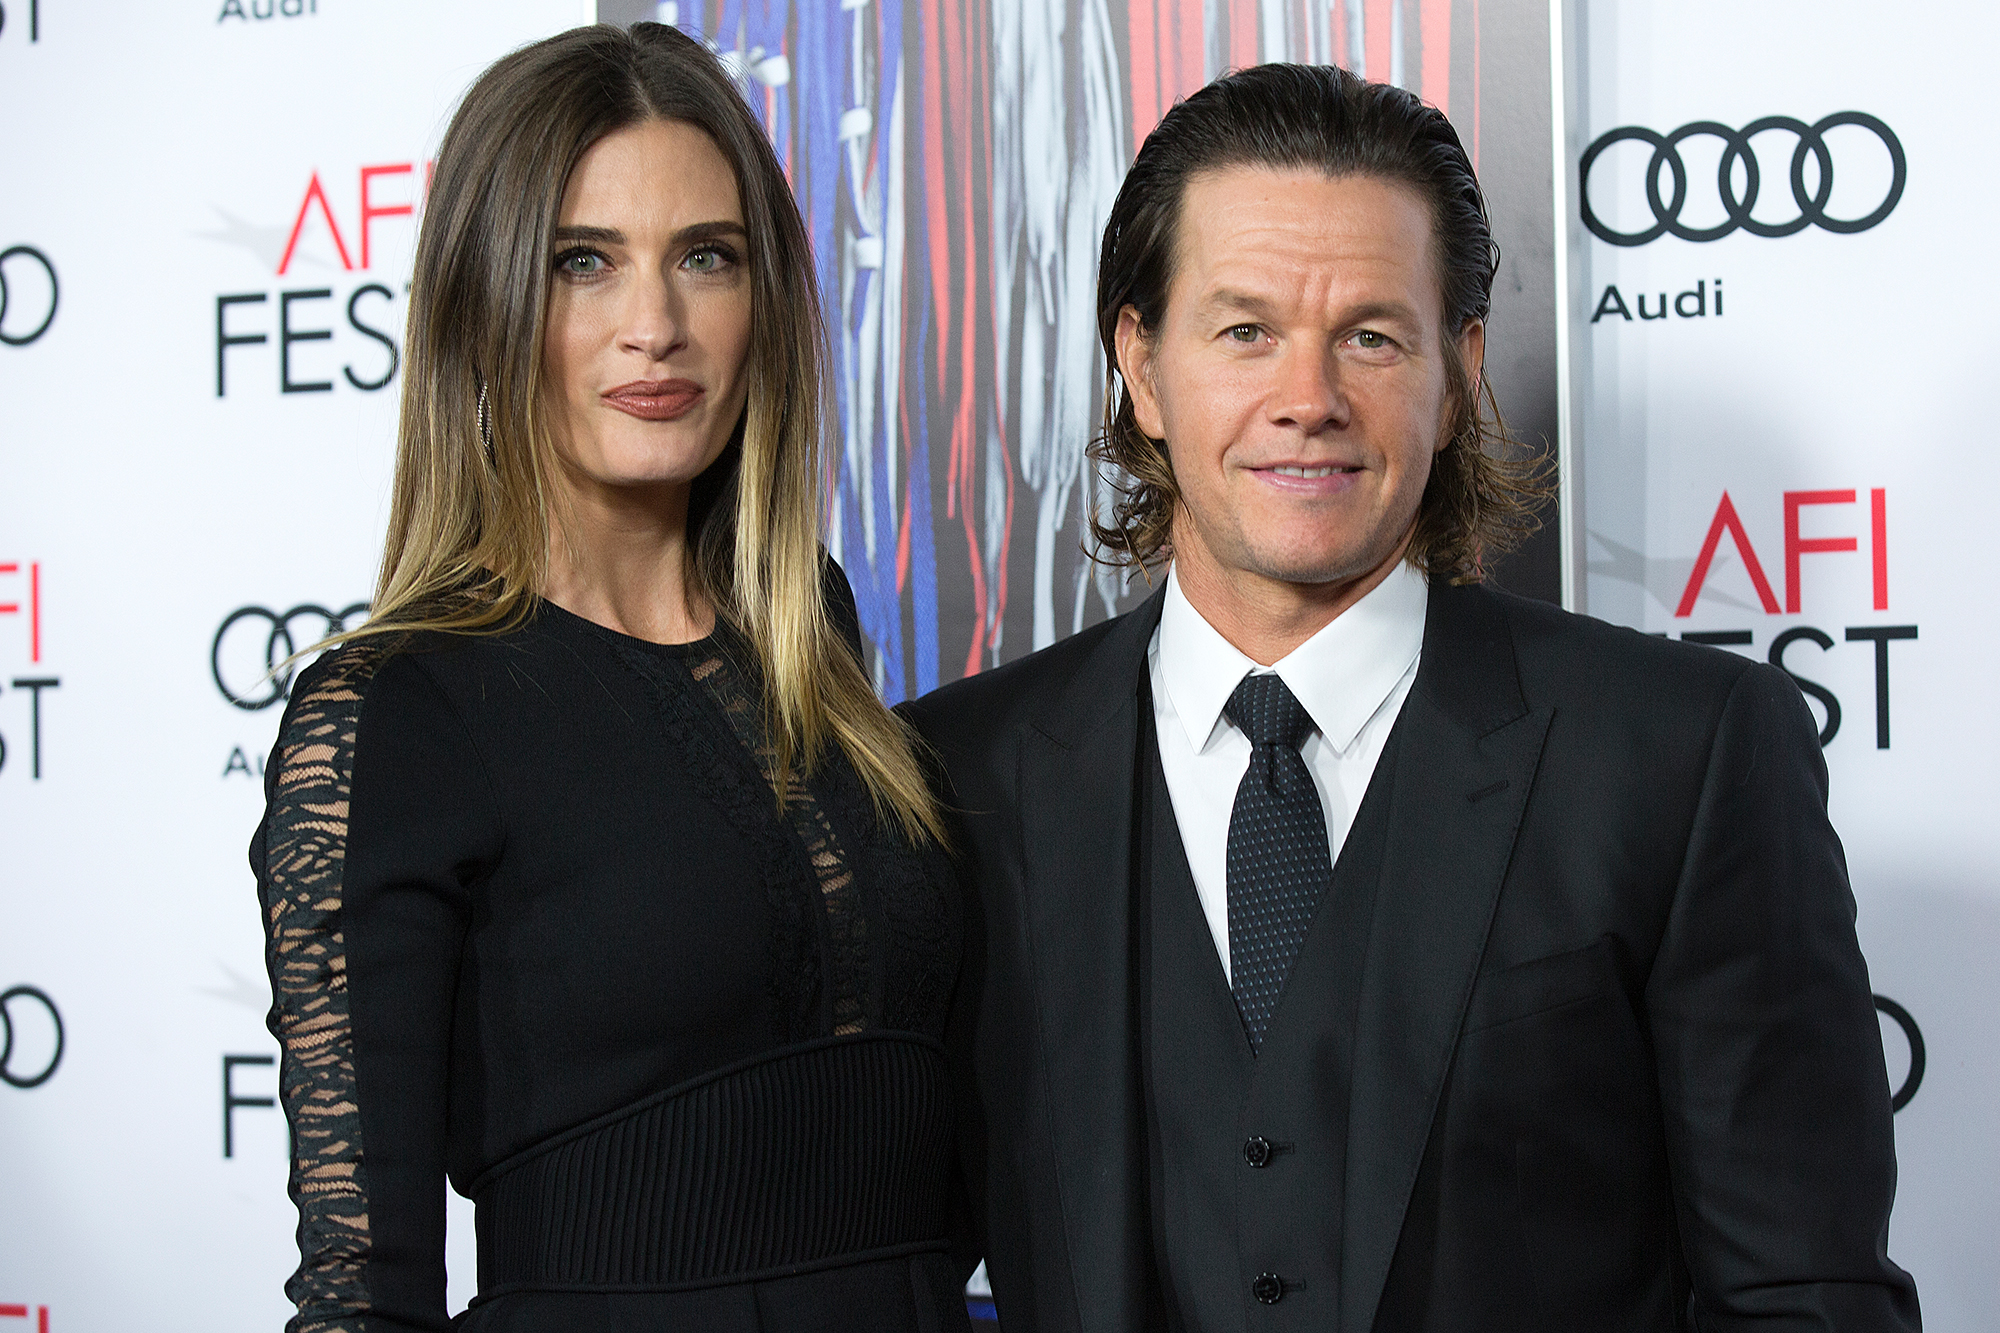 Mark Wahlberg Bio Early Life Career Wife Net Worth Measurements